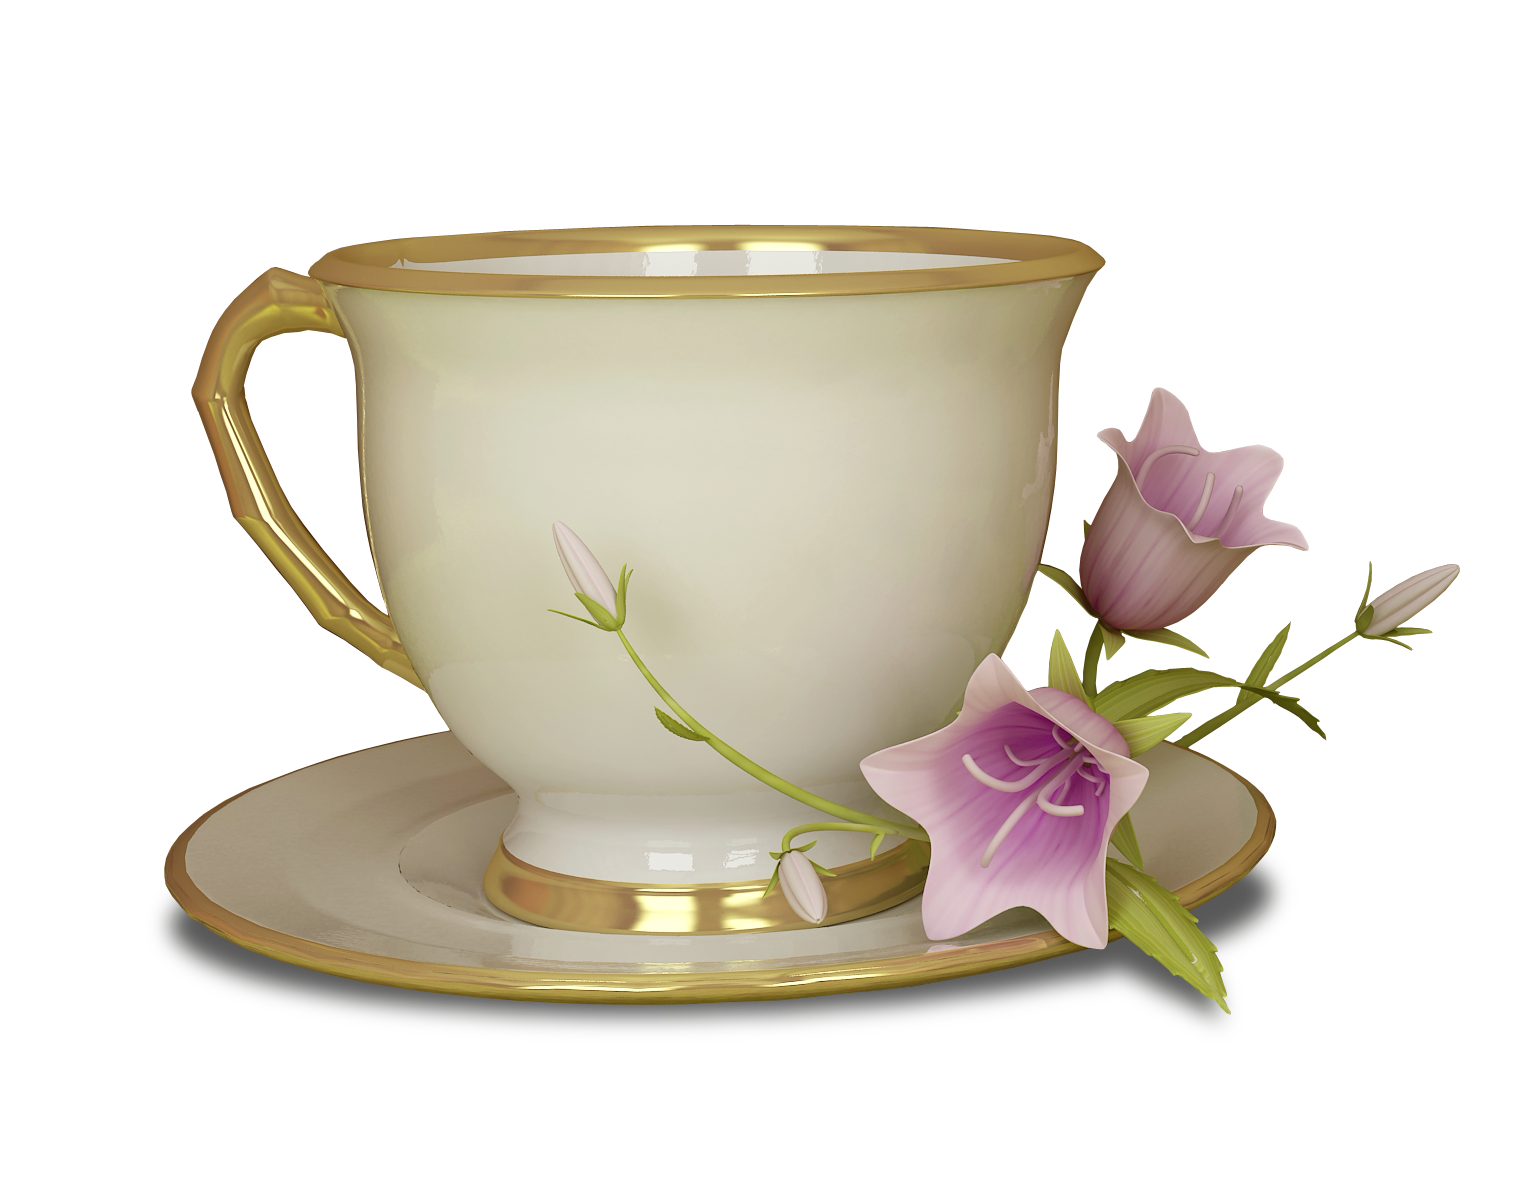 Tea cup clipart transparent background png free Cream and Gold Tea Cup with Pink Flower Large Transparent ... png free